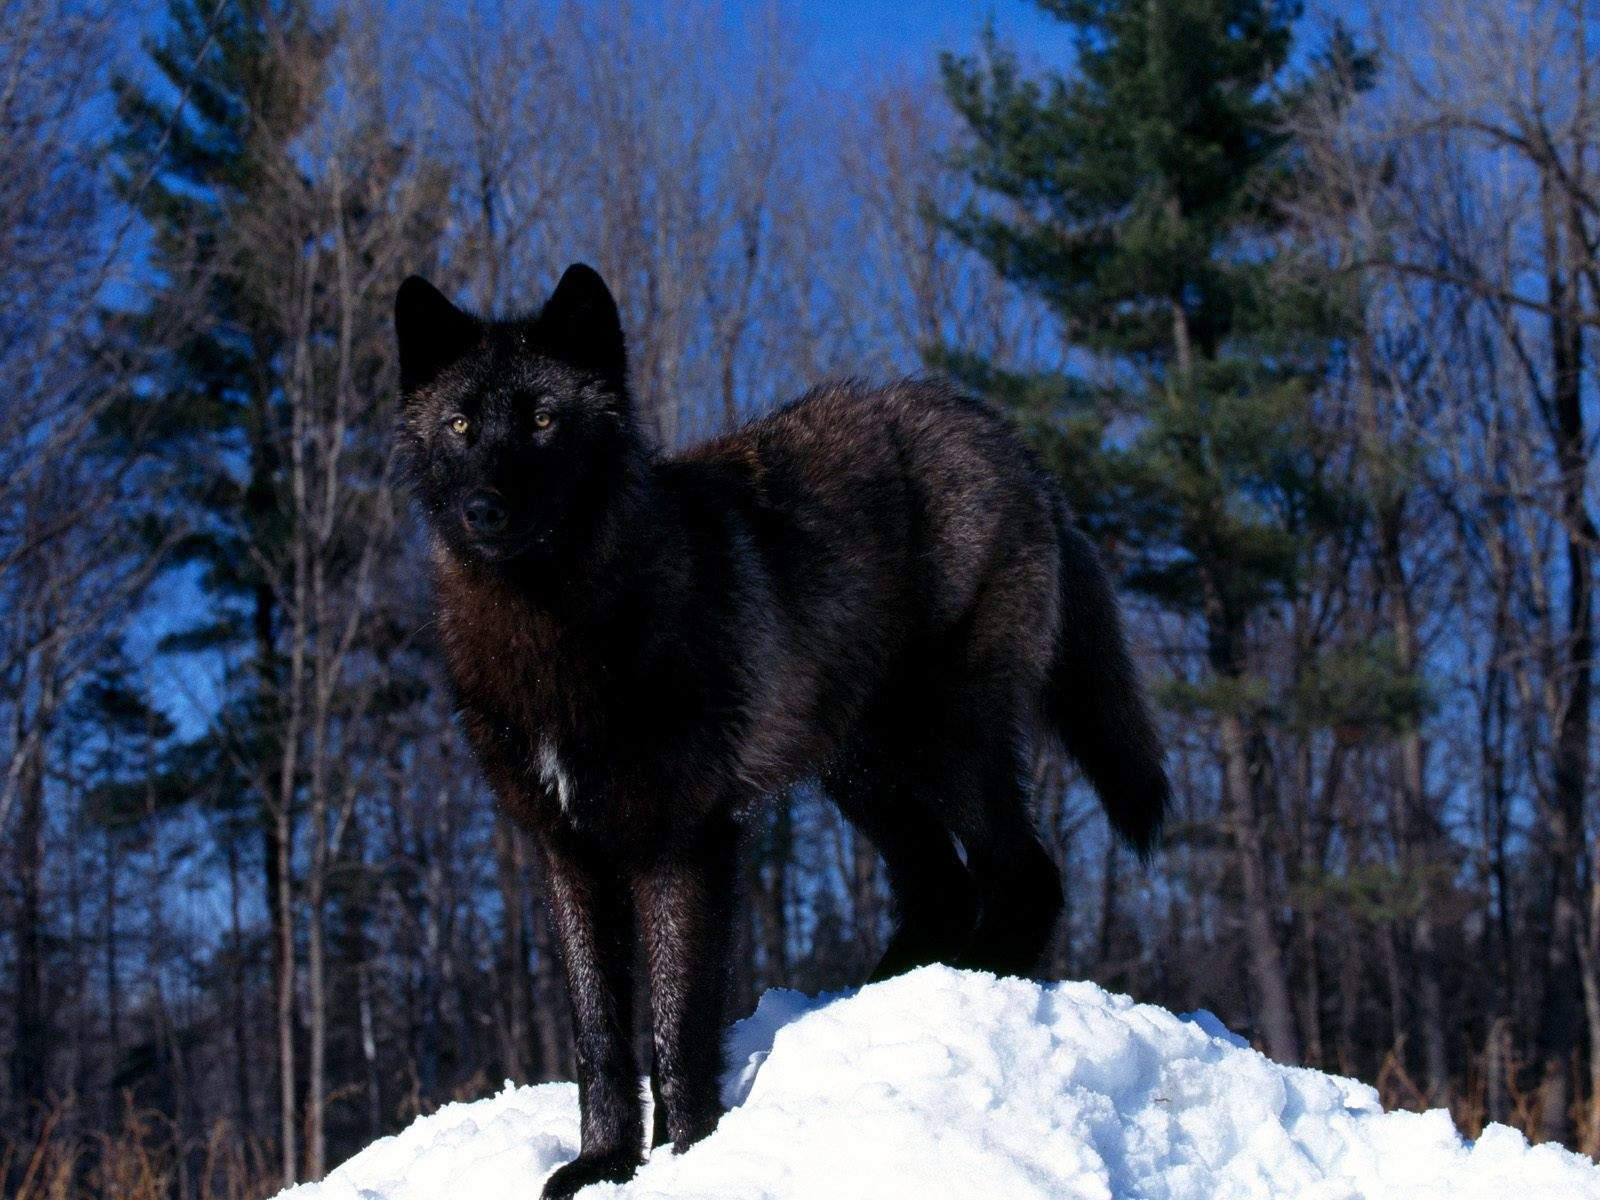 http://4.bp.blogspot.com/-kSgj4sWVM1E/UJqNQIN1MdI/AAAAAAAABRo/LmsE97A0CS4/s1600/Black+Wolf+in+Snow-wallpaper-Black+Wolf+in+Snow-hd-desktop.jpg